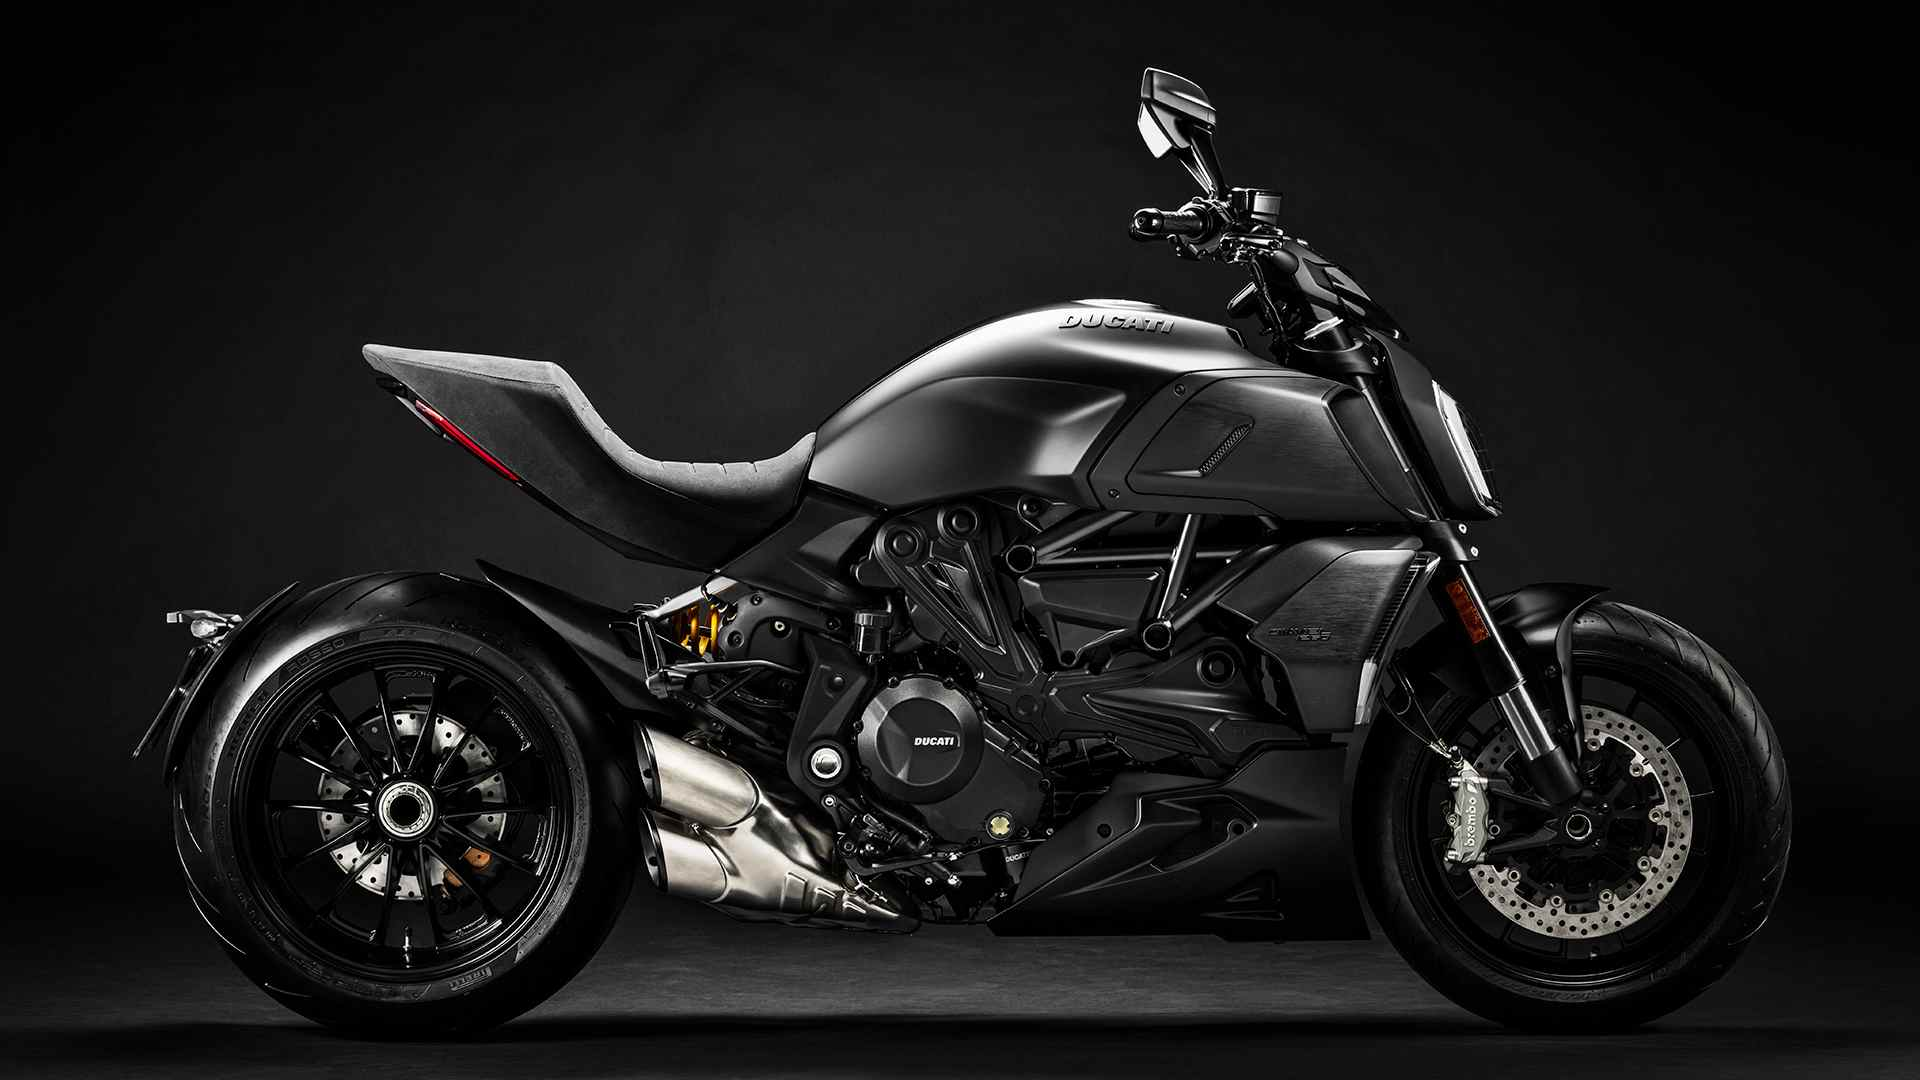 In its BS6 avatar, the Ducati Diavel is slightly heavier but also a little more powerful. Image: Ducati